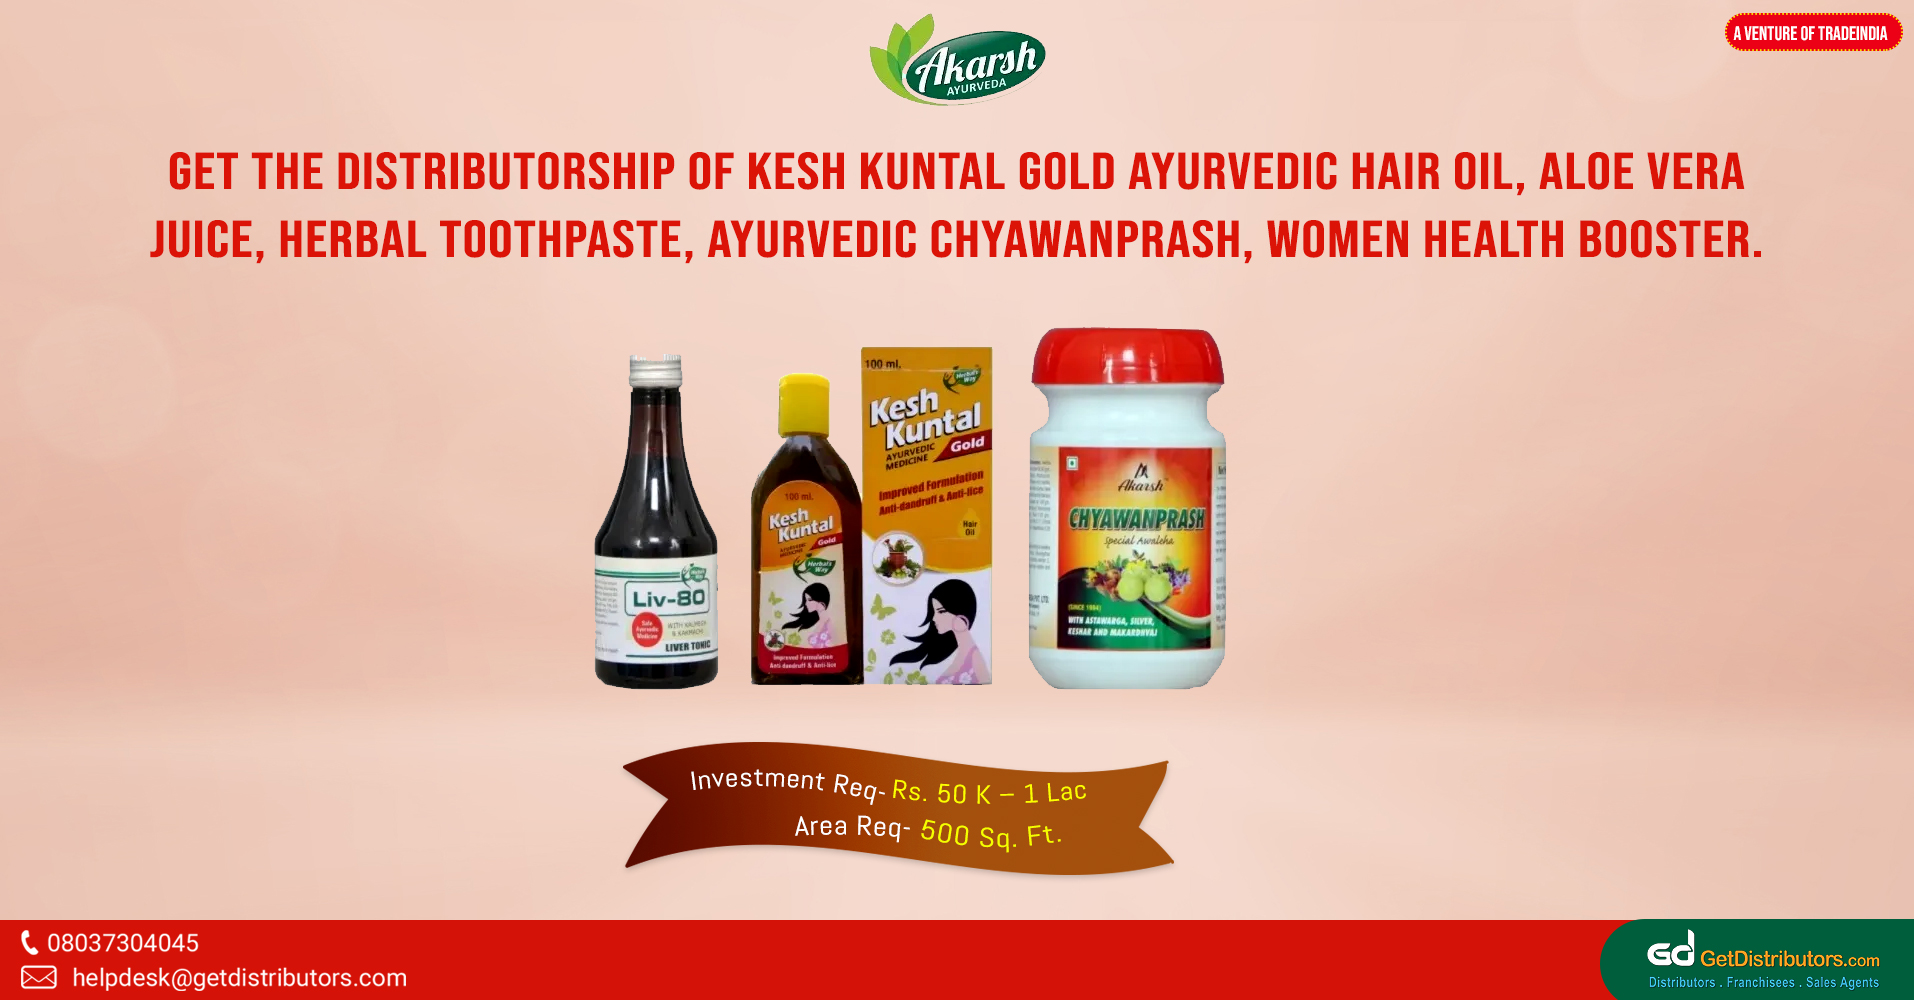 Akarsh Ayurveda Private Limited